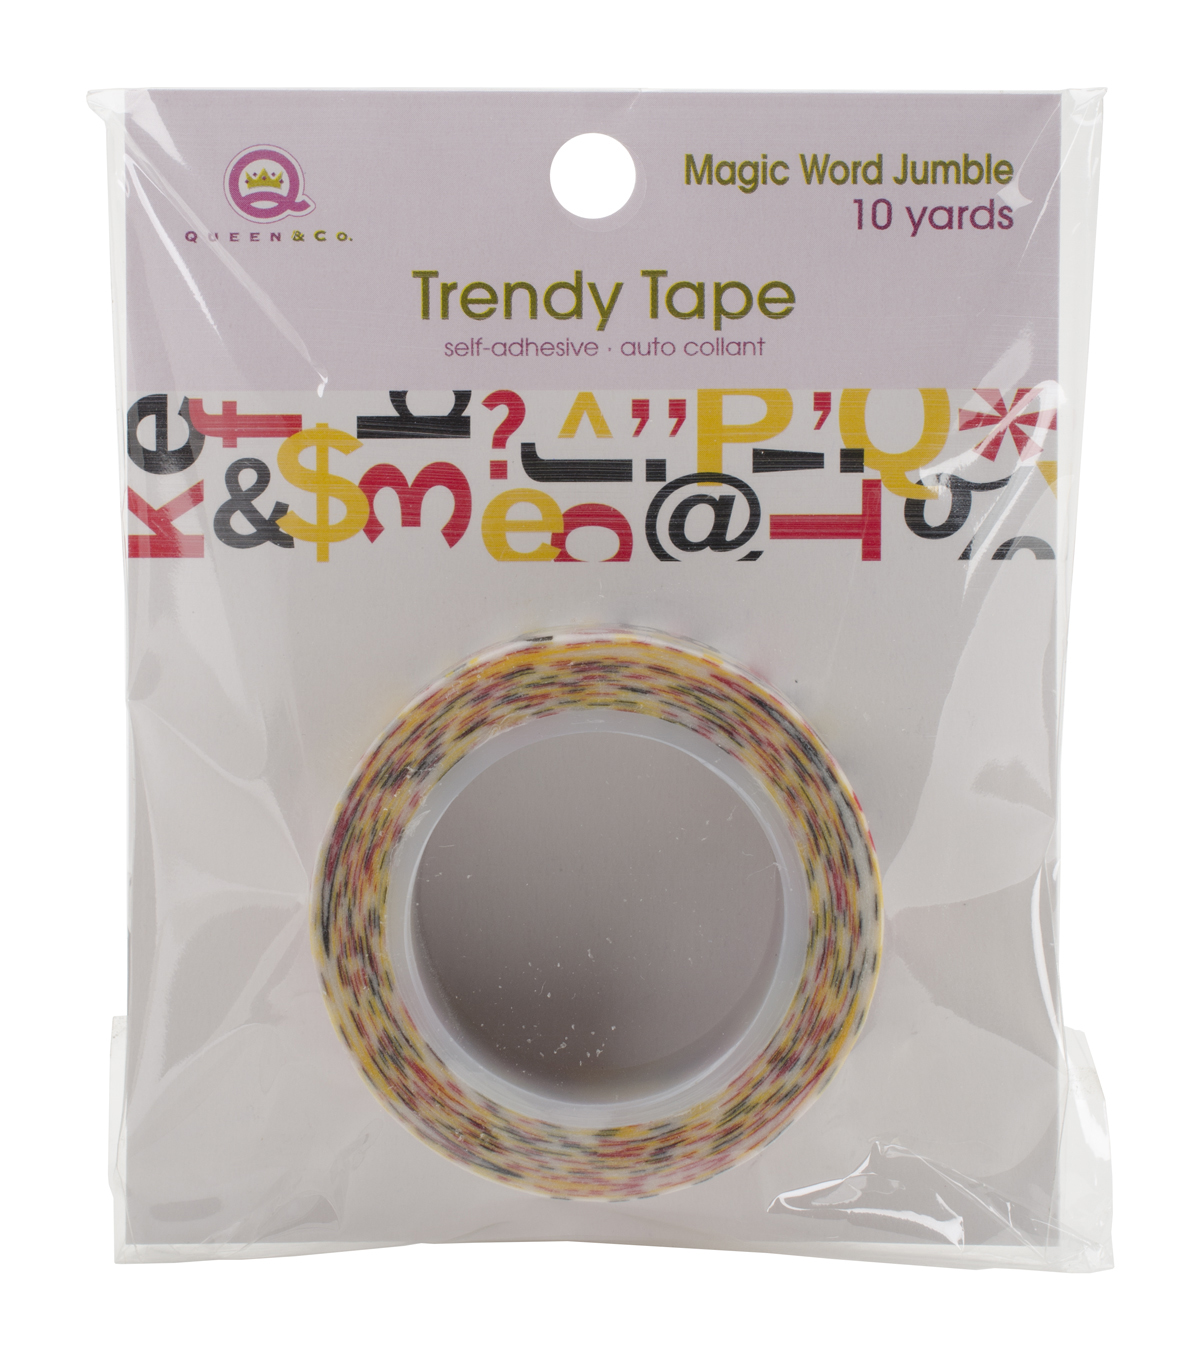 Queen & Co Letter Jumble Trendy Tape